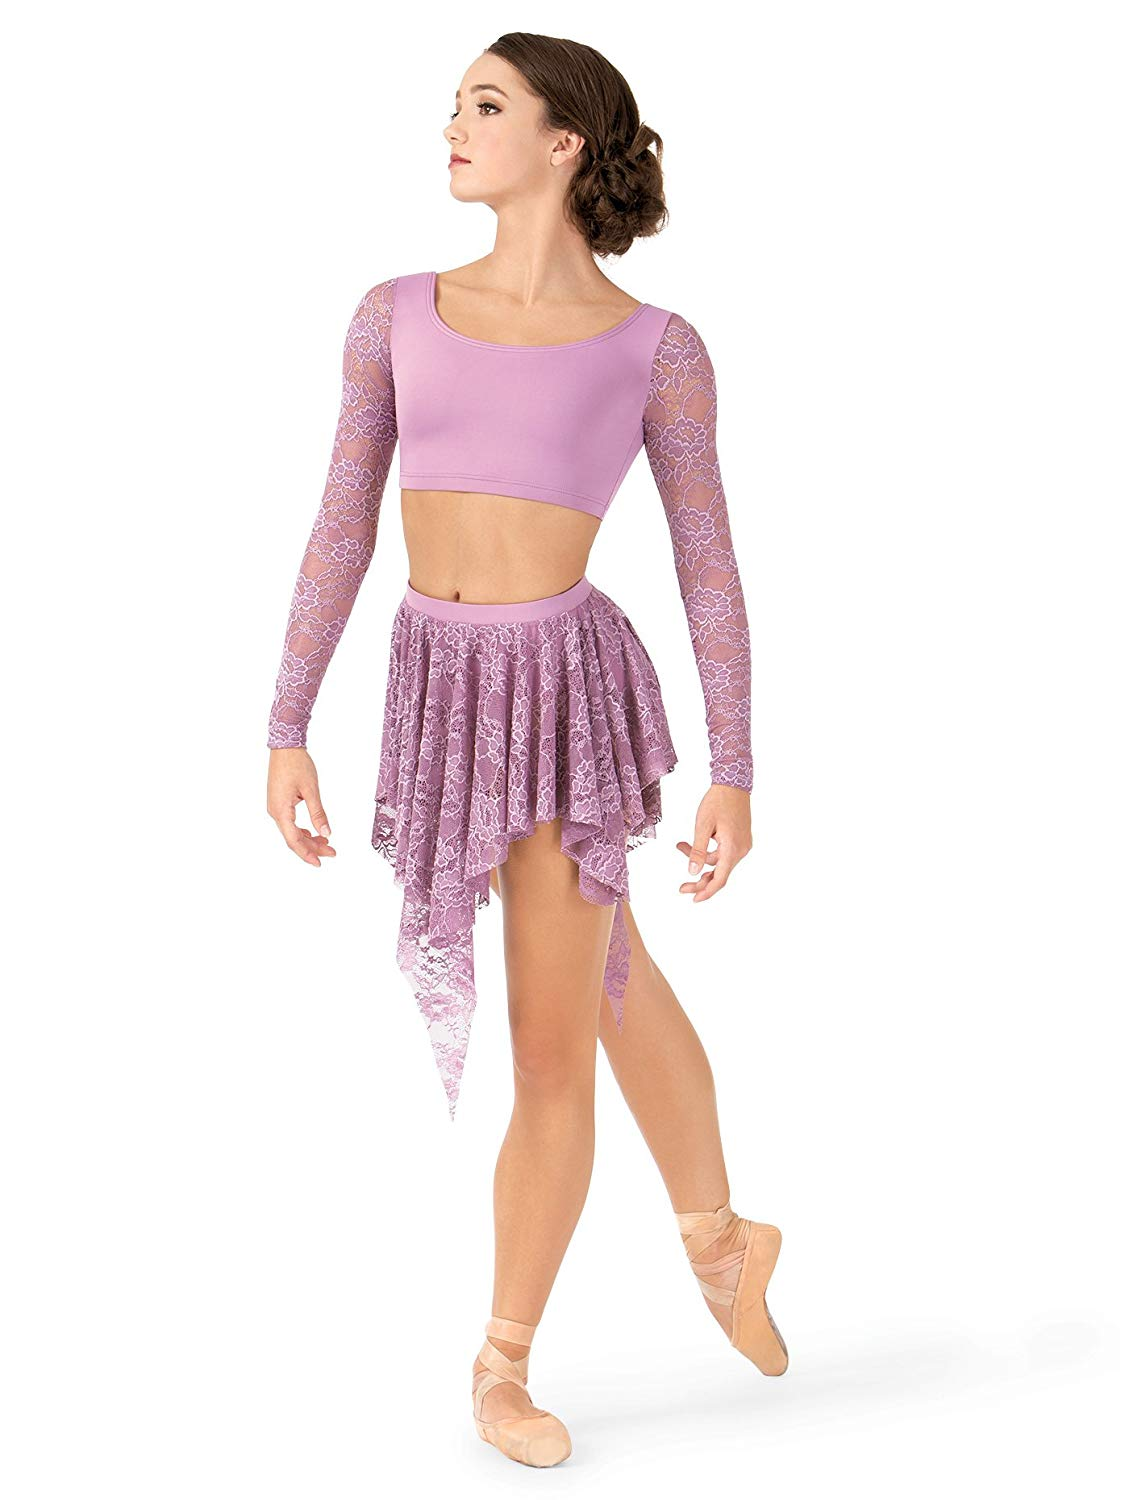 2512b42ef9 Get Quotations · Body Wrappers Adult Uneven Hem Drapey Lace Dance  Skirt